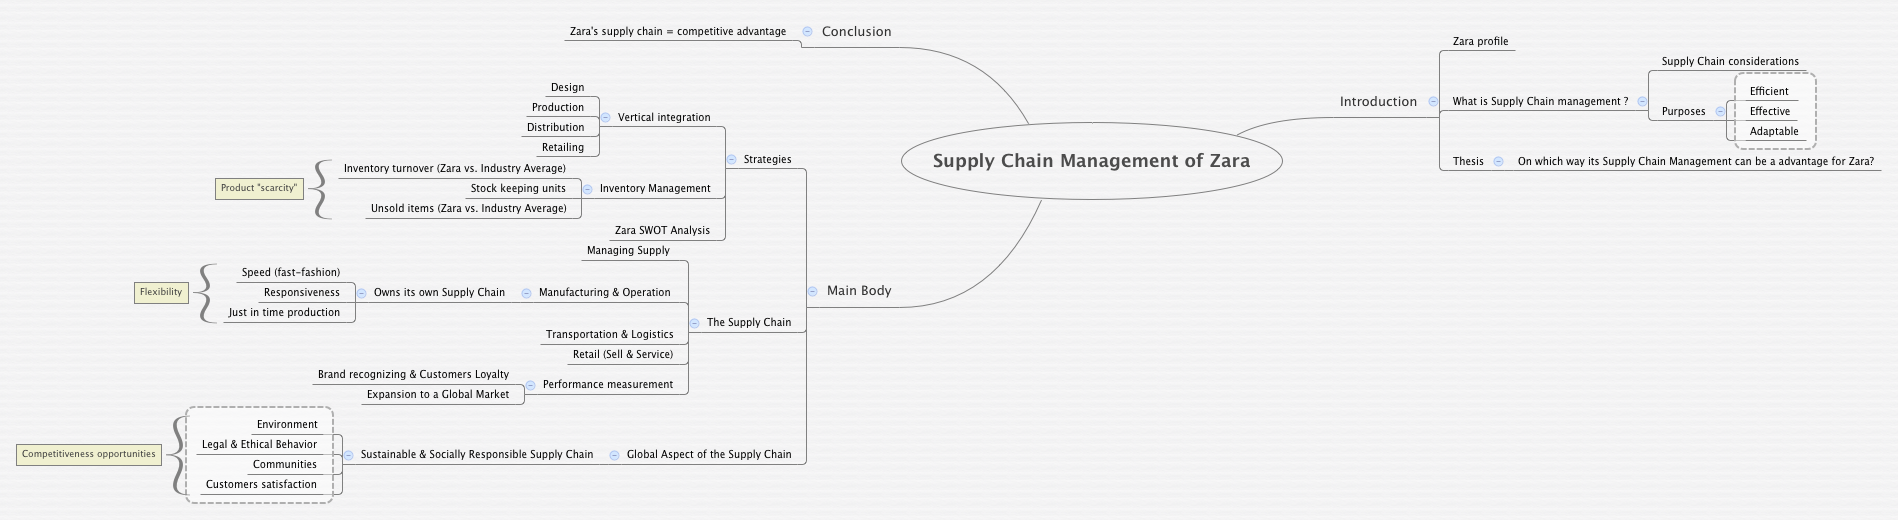 supply chain management of zara online library